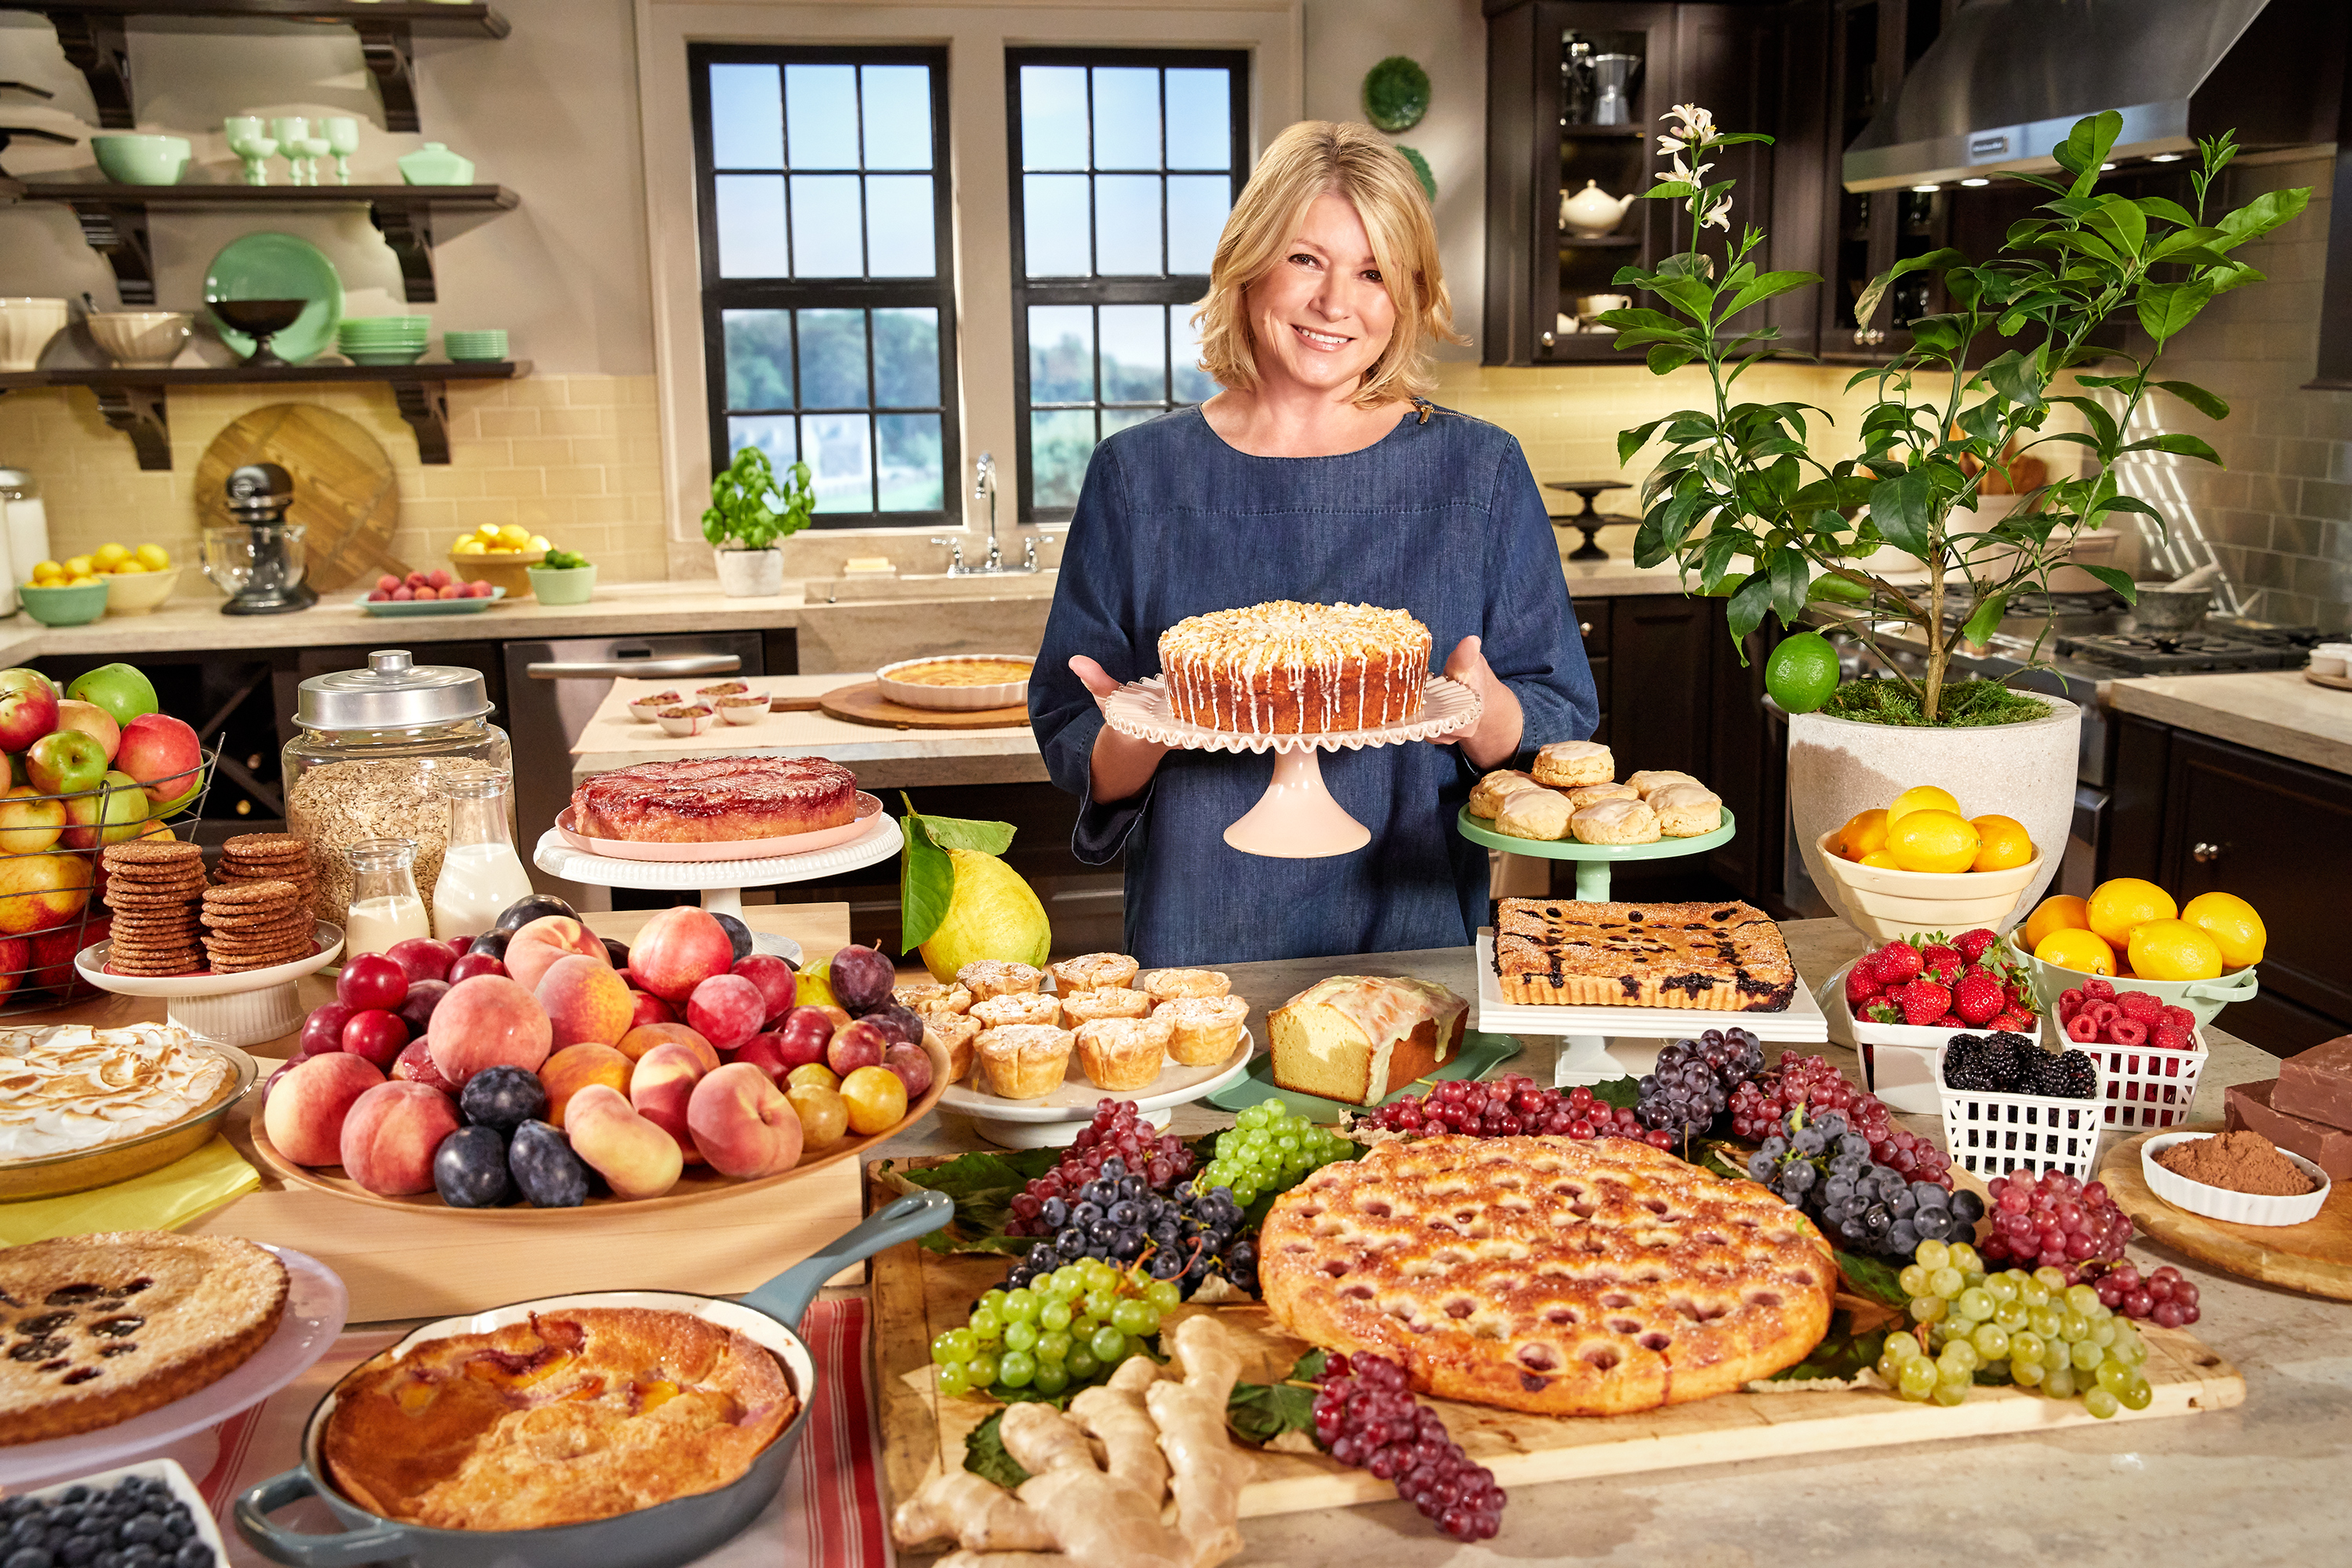 martha in kitchen holding cake surrounded by desserts